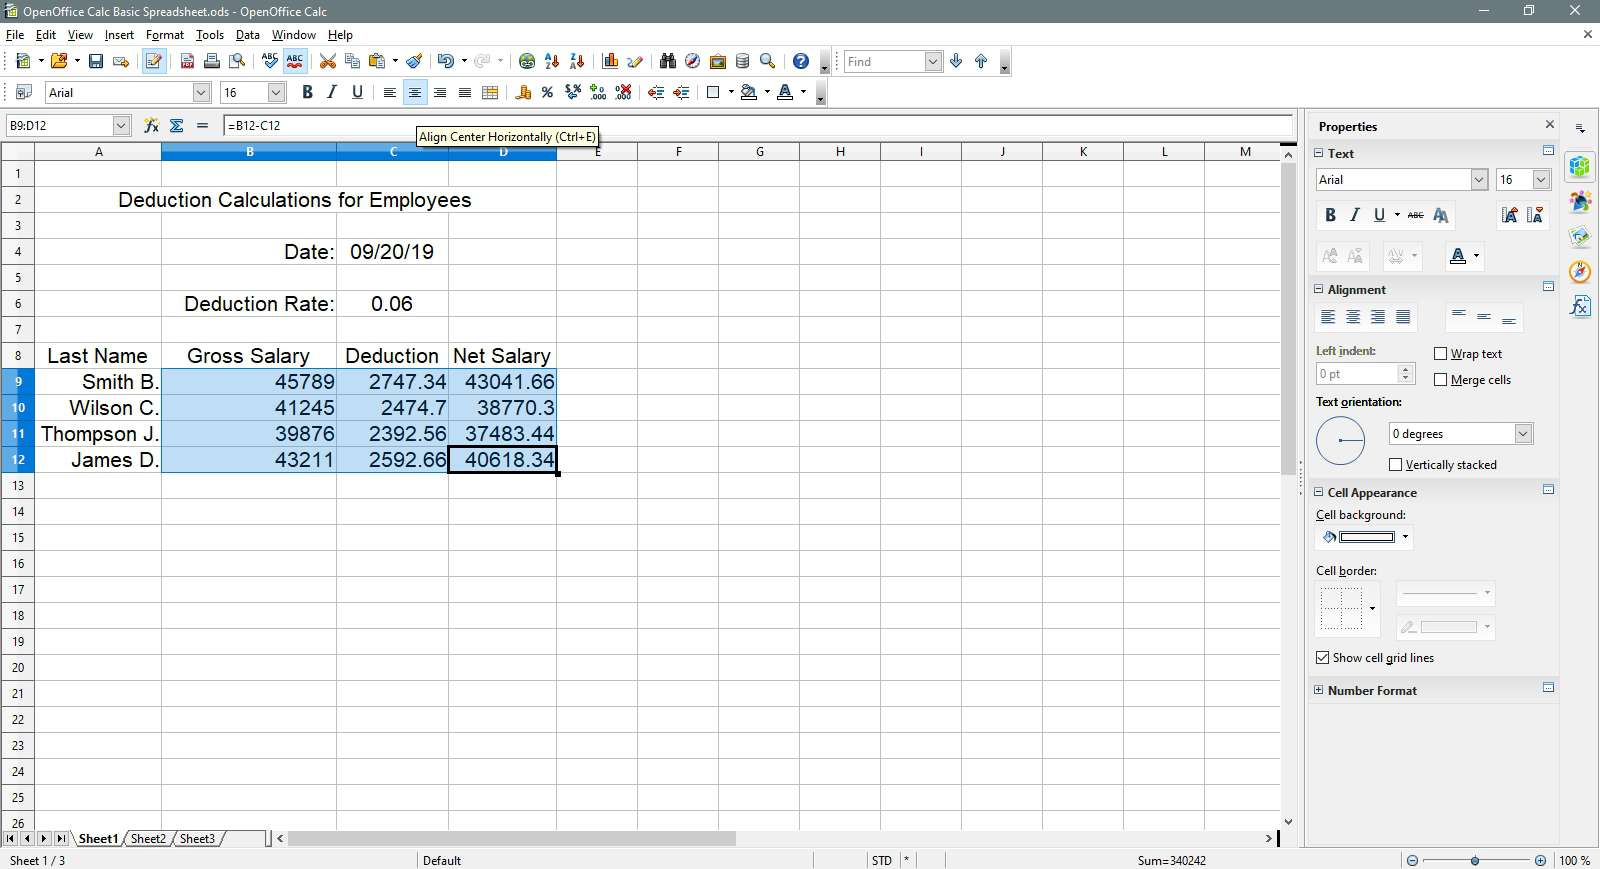 Cells are aligned horizontally centered in OpenOffice Calc.